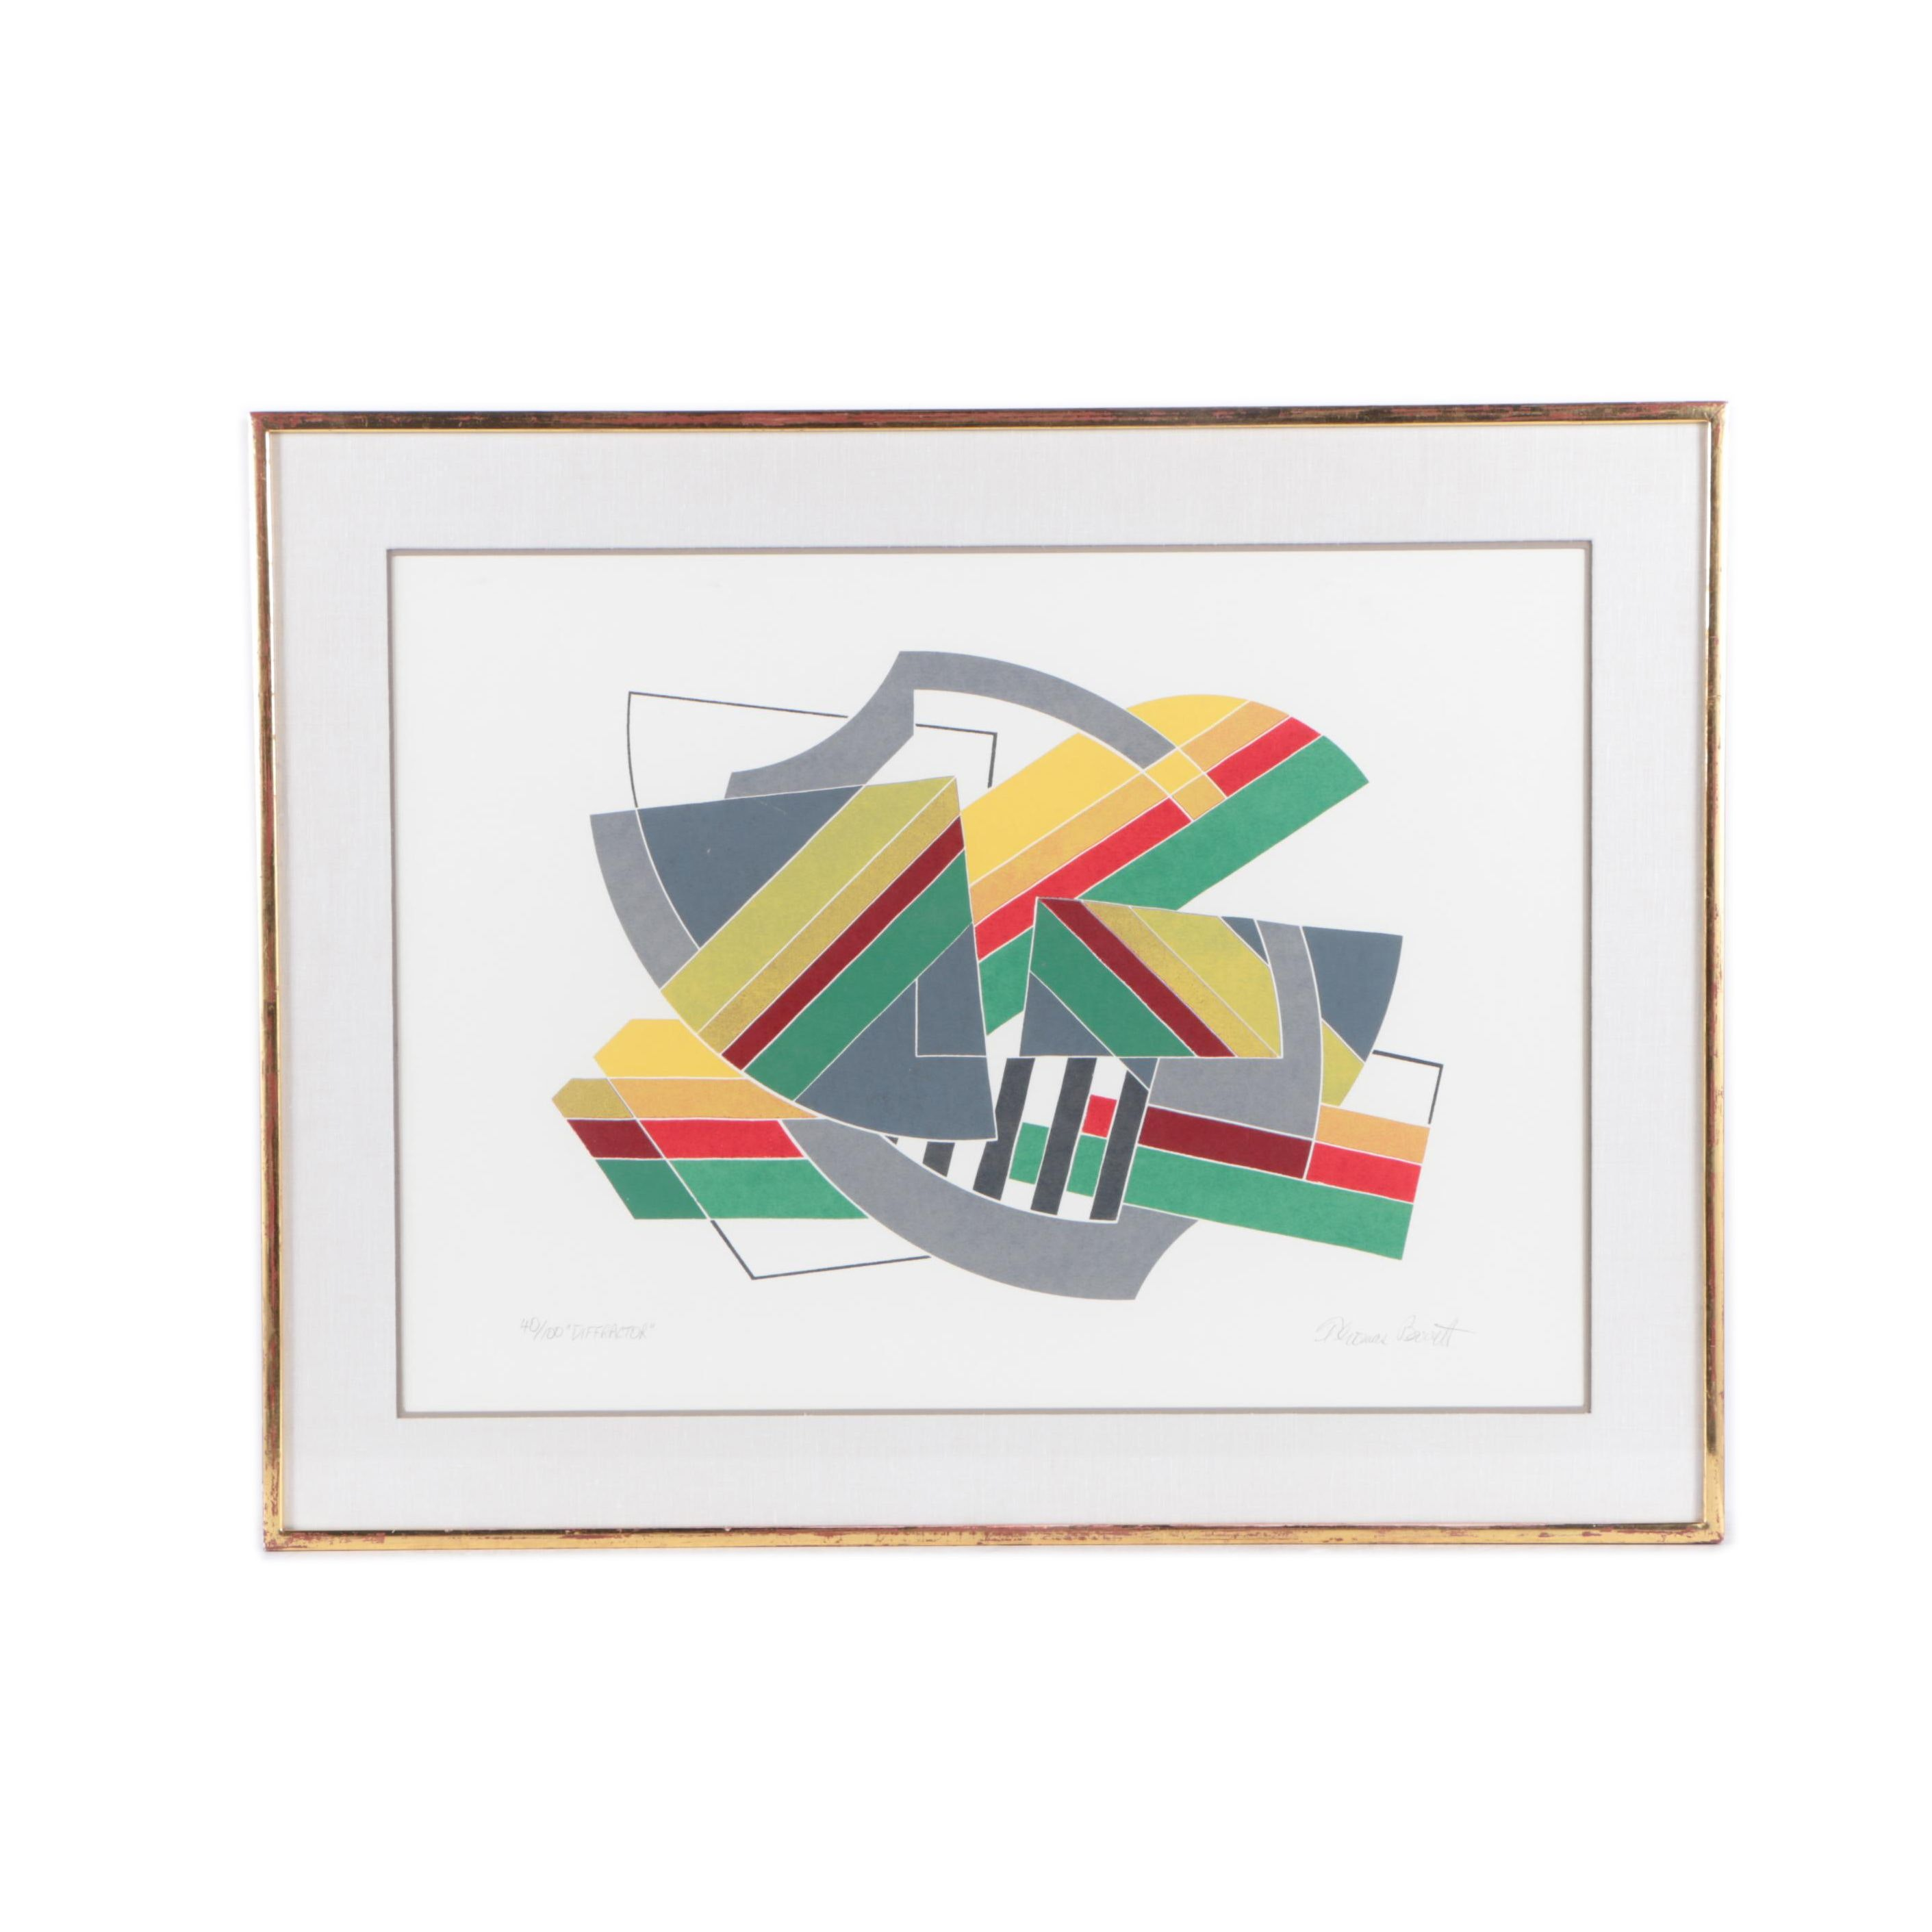 "Thomas Barrett Limited Edition Serigraph on Paper ""Diffractor"""